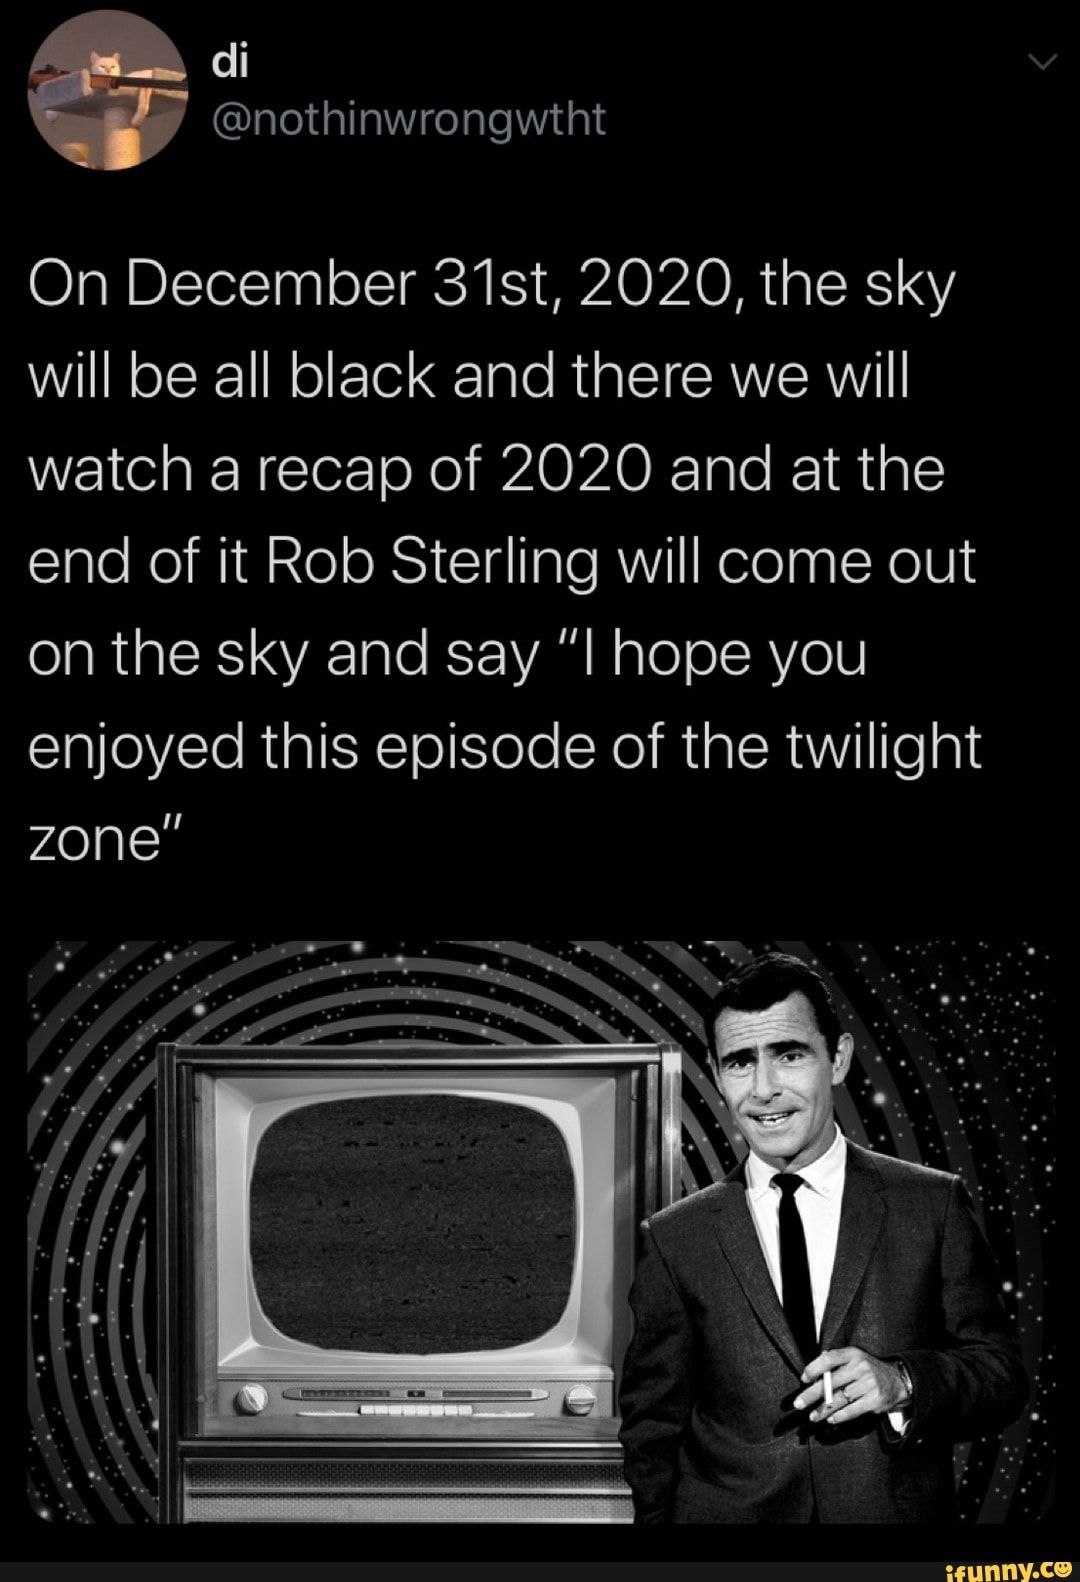 Twilight Zone Meme 2020